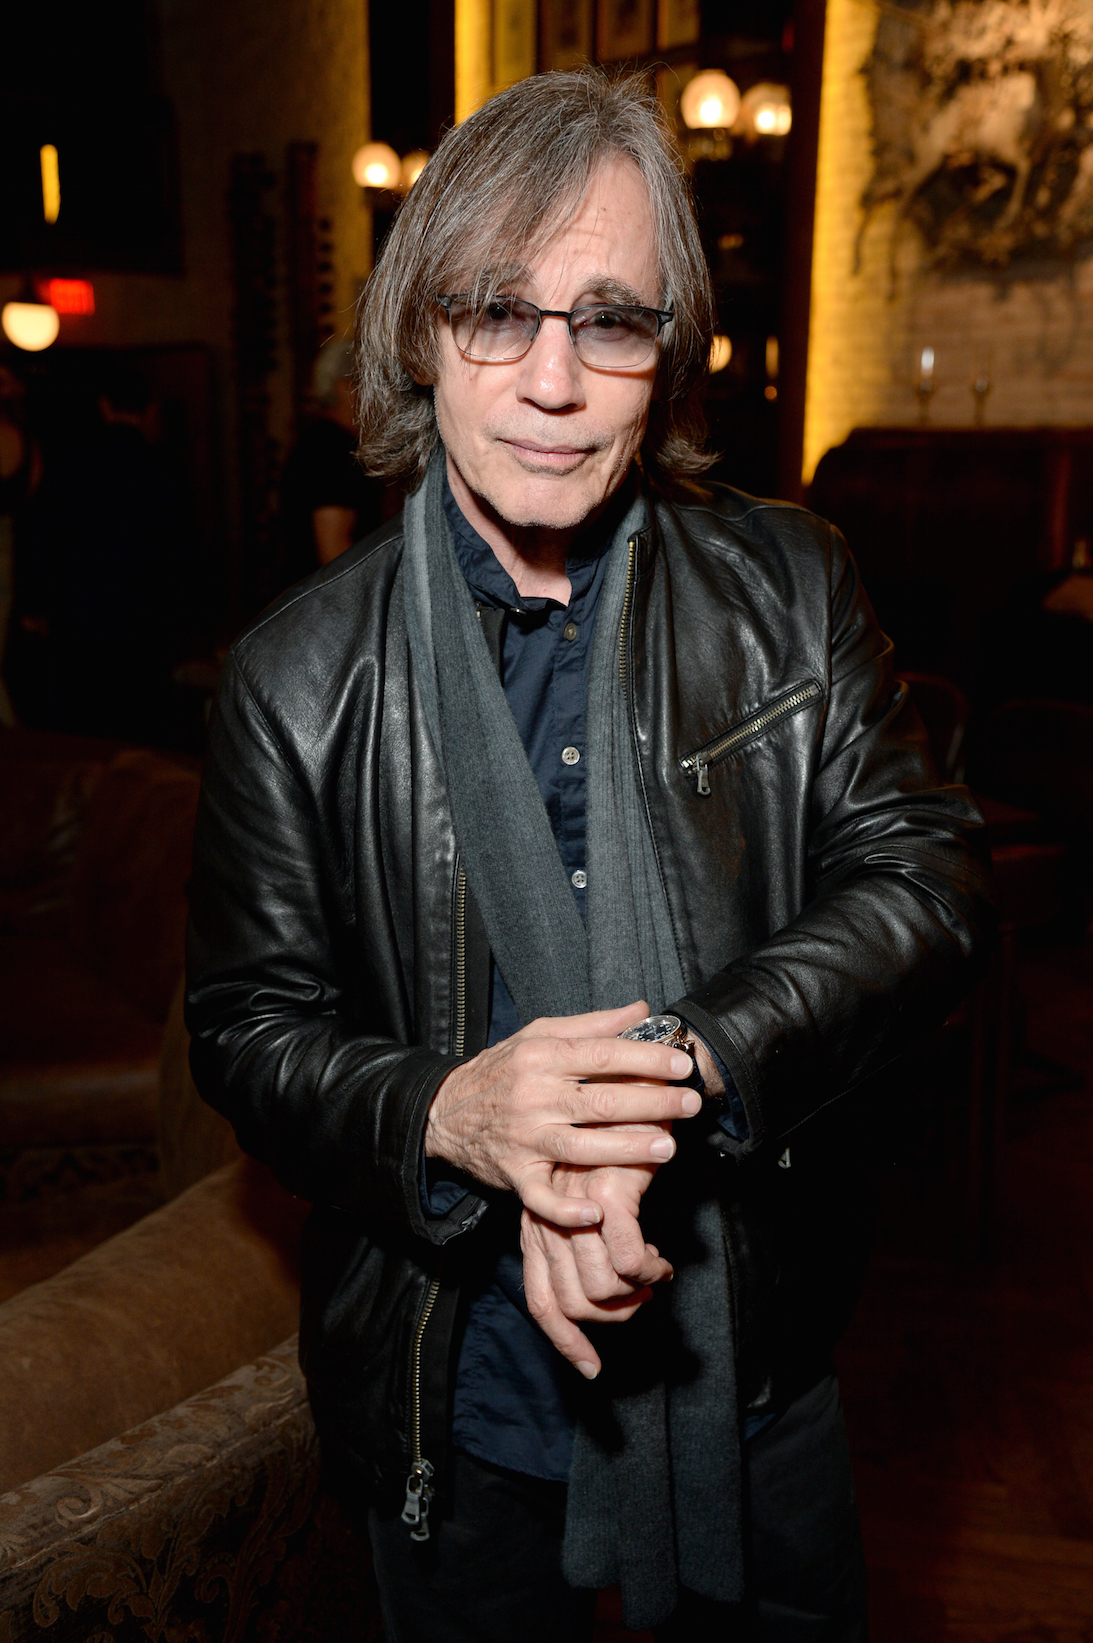 """Singer-songwriter Jackson Browne attends BOVET 1822 & Artists for Peace and Justice Present """"Songs From the Cinema"""" Benefit on February 23, 2017 in Los Angeles, California. (Photo by Michael Kovac/Getty Images for Artists for Peace and Justice) *** Local Caption *** Jackson Browne"""